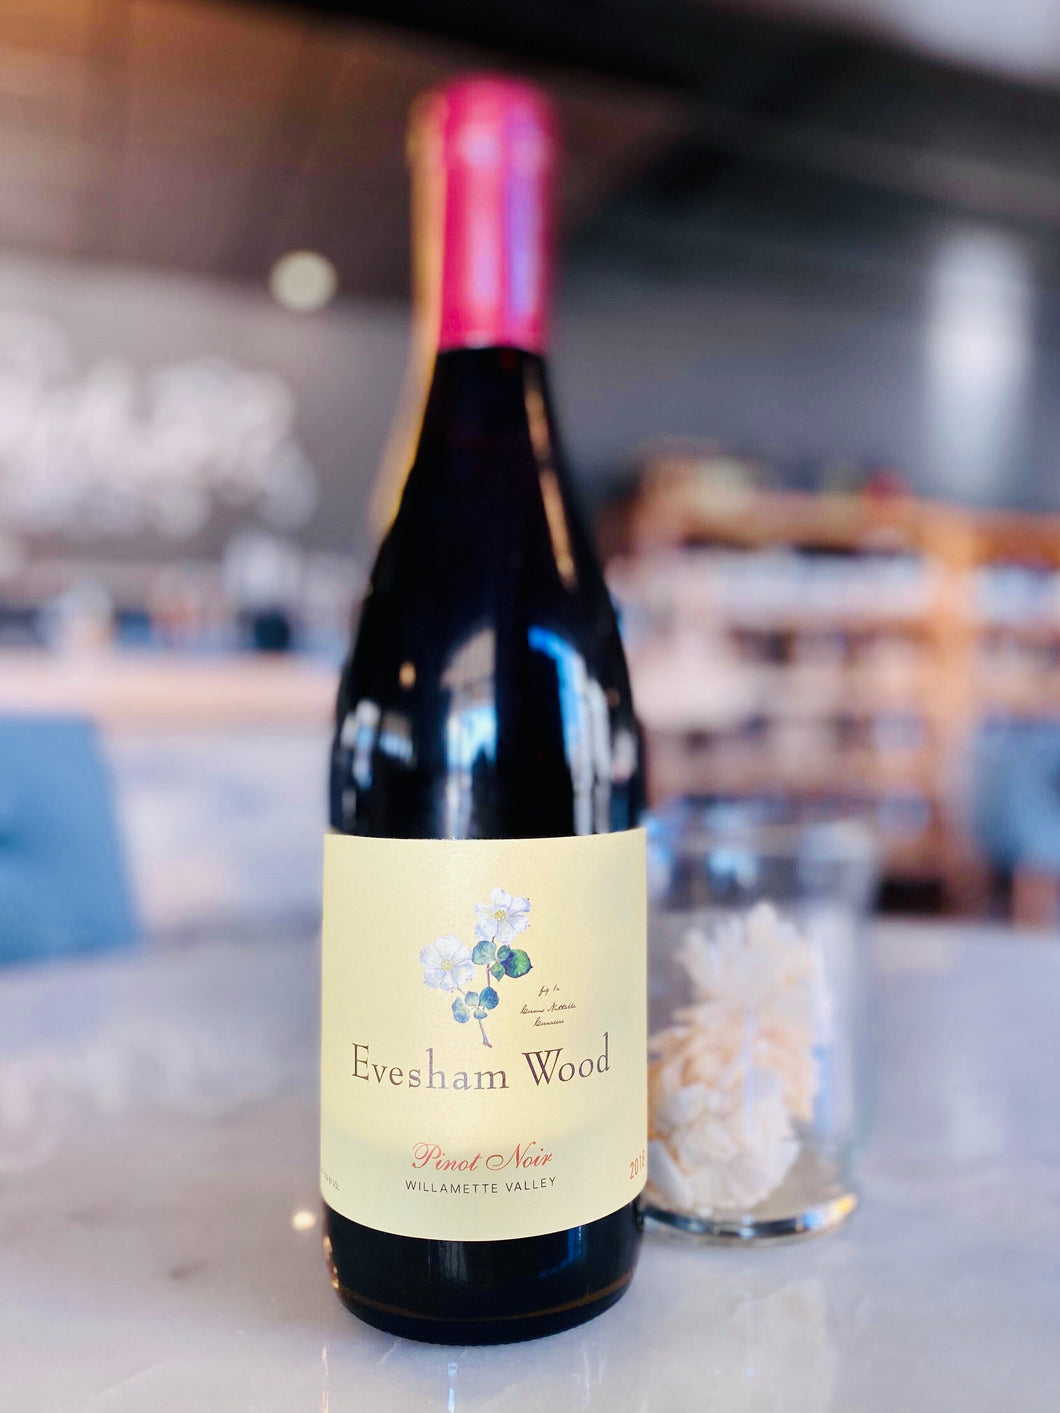 Evesham Wood Willamette Valley Pinot Noir, 2018